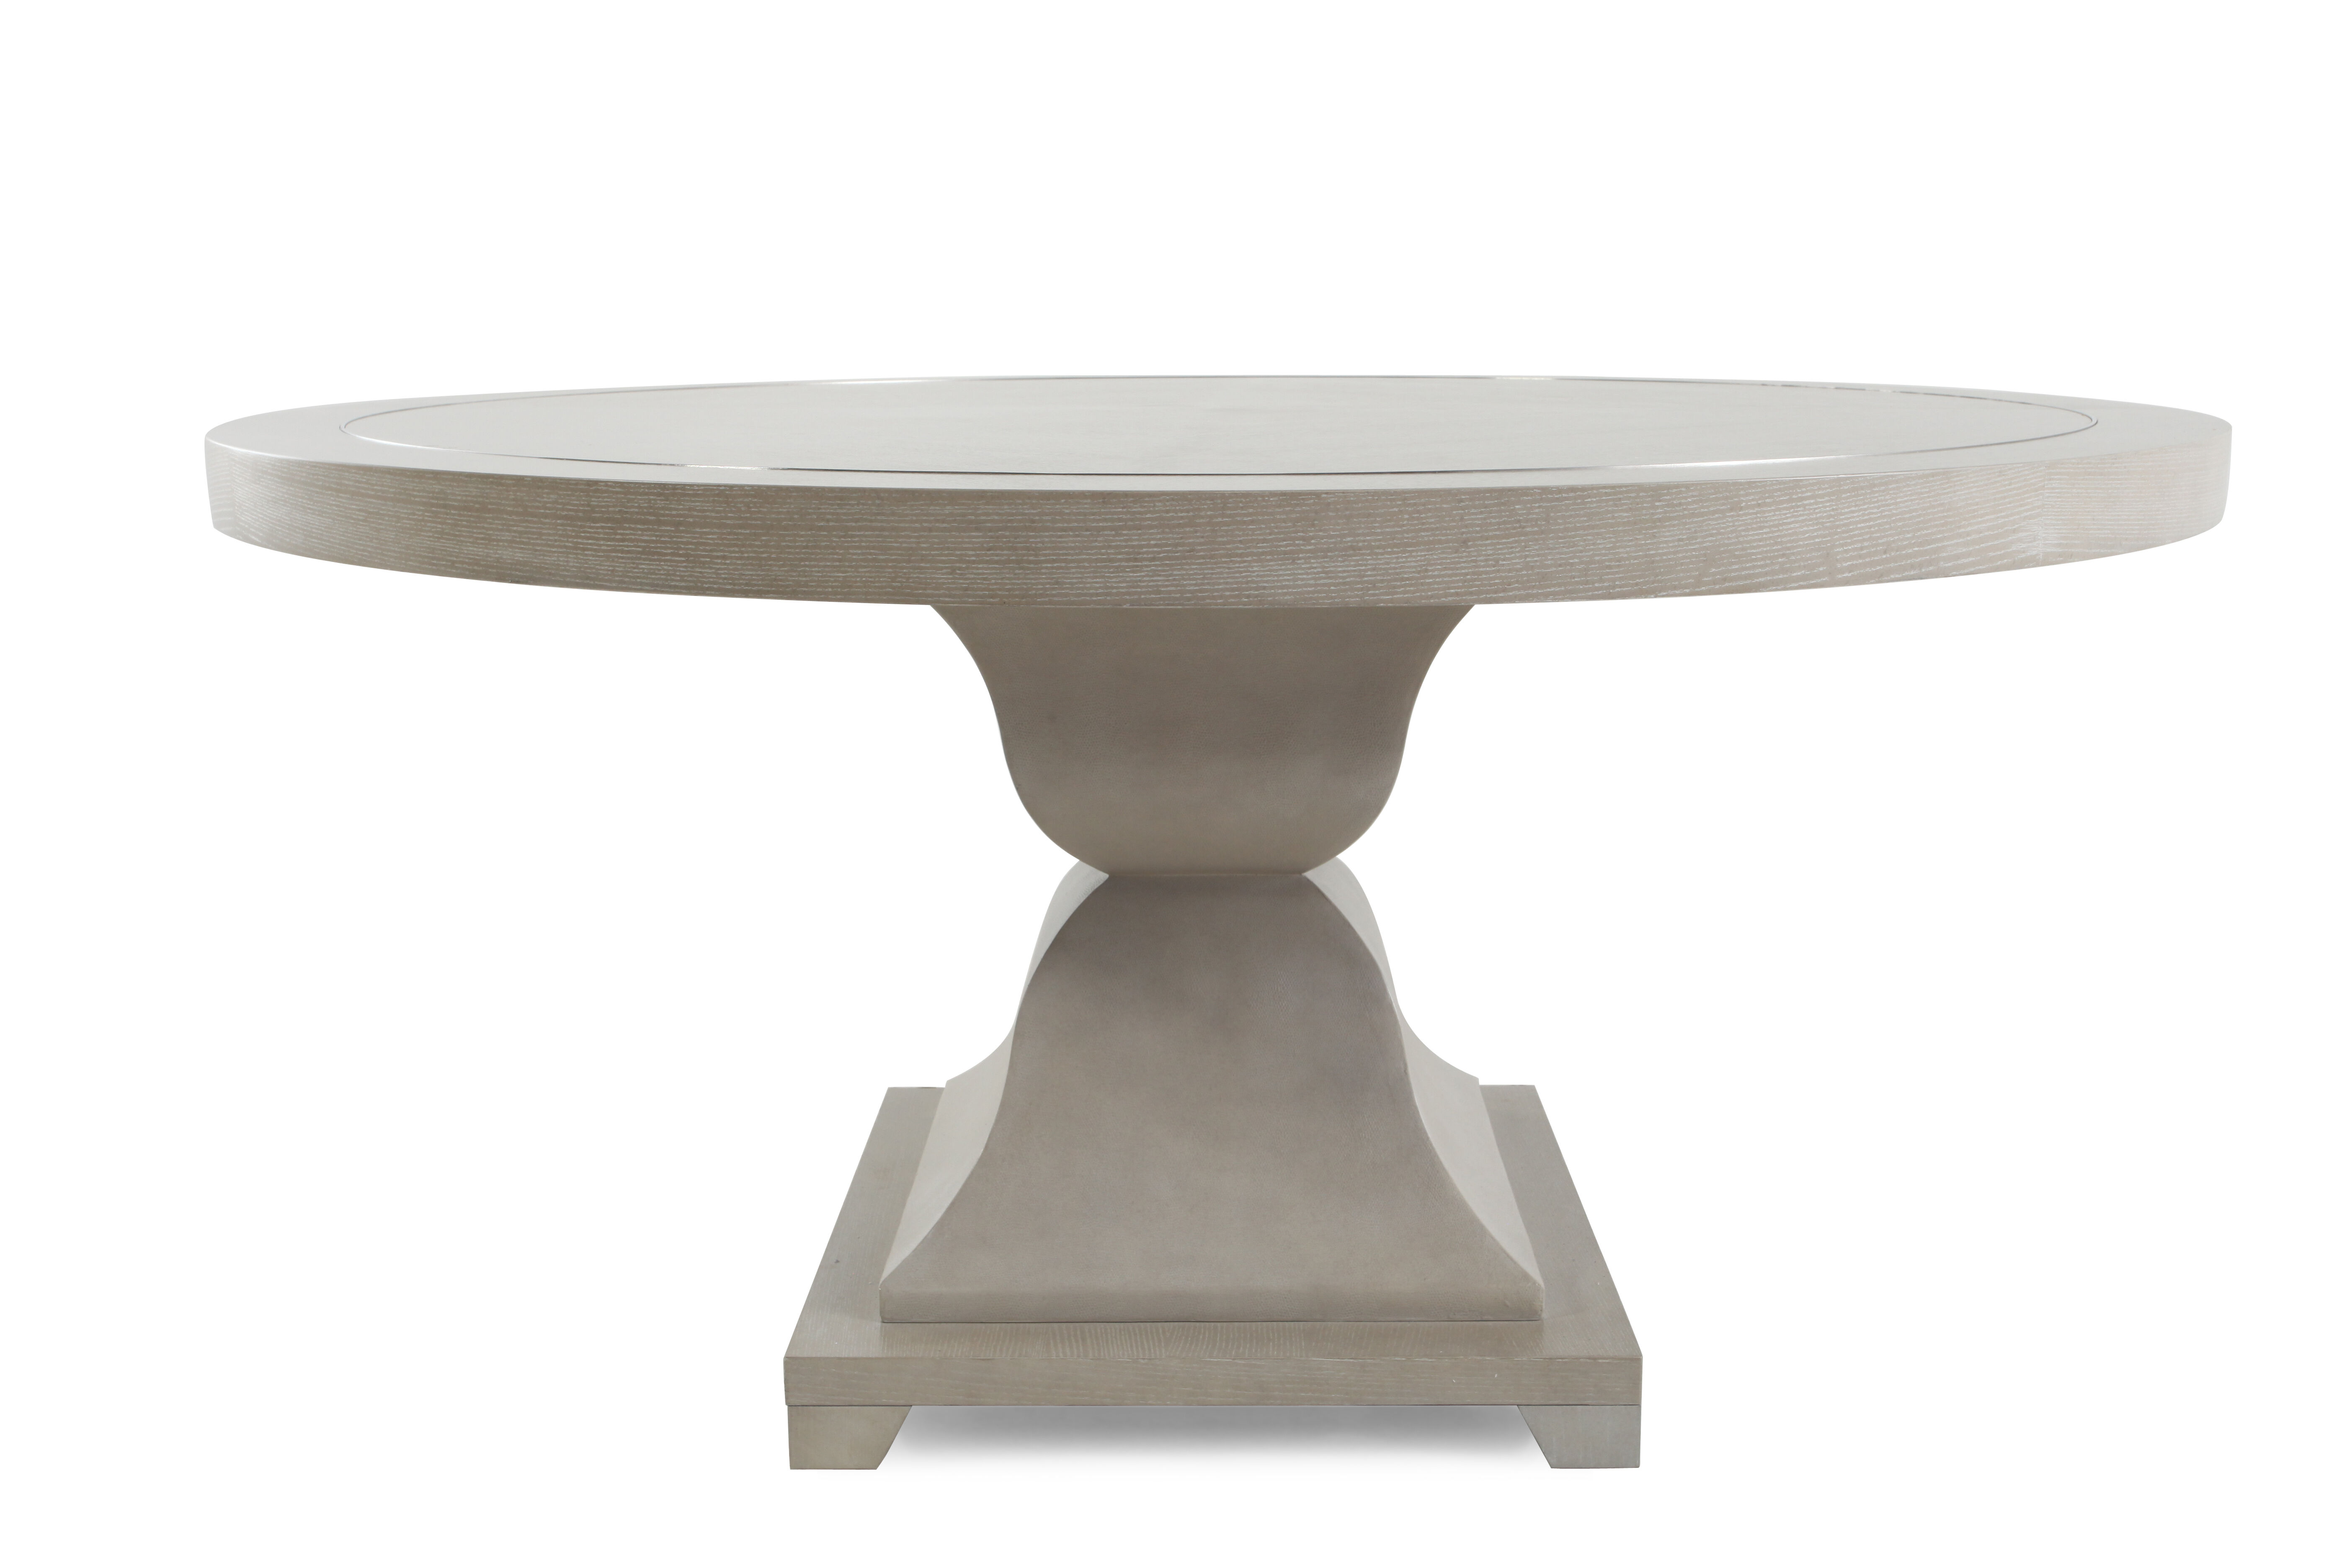 Images Metropolitan 60u0026quot; Round Dining Table With Leather Patterns In  Heathered Gray Metropolitan 60u0026quot; Round Dining Table With Leather  Patterns In ...